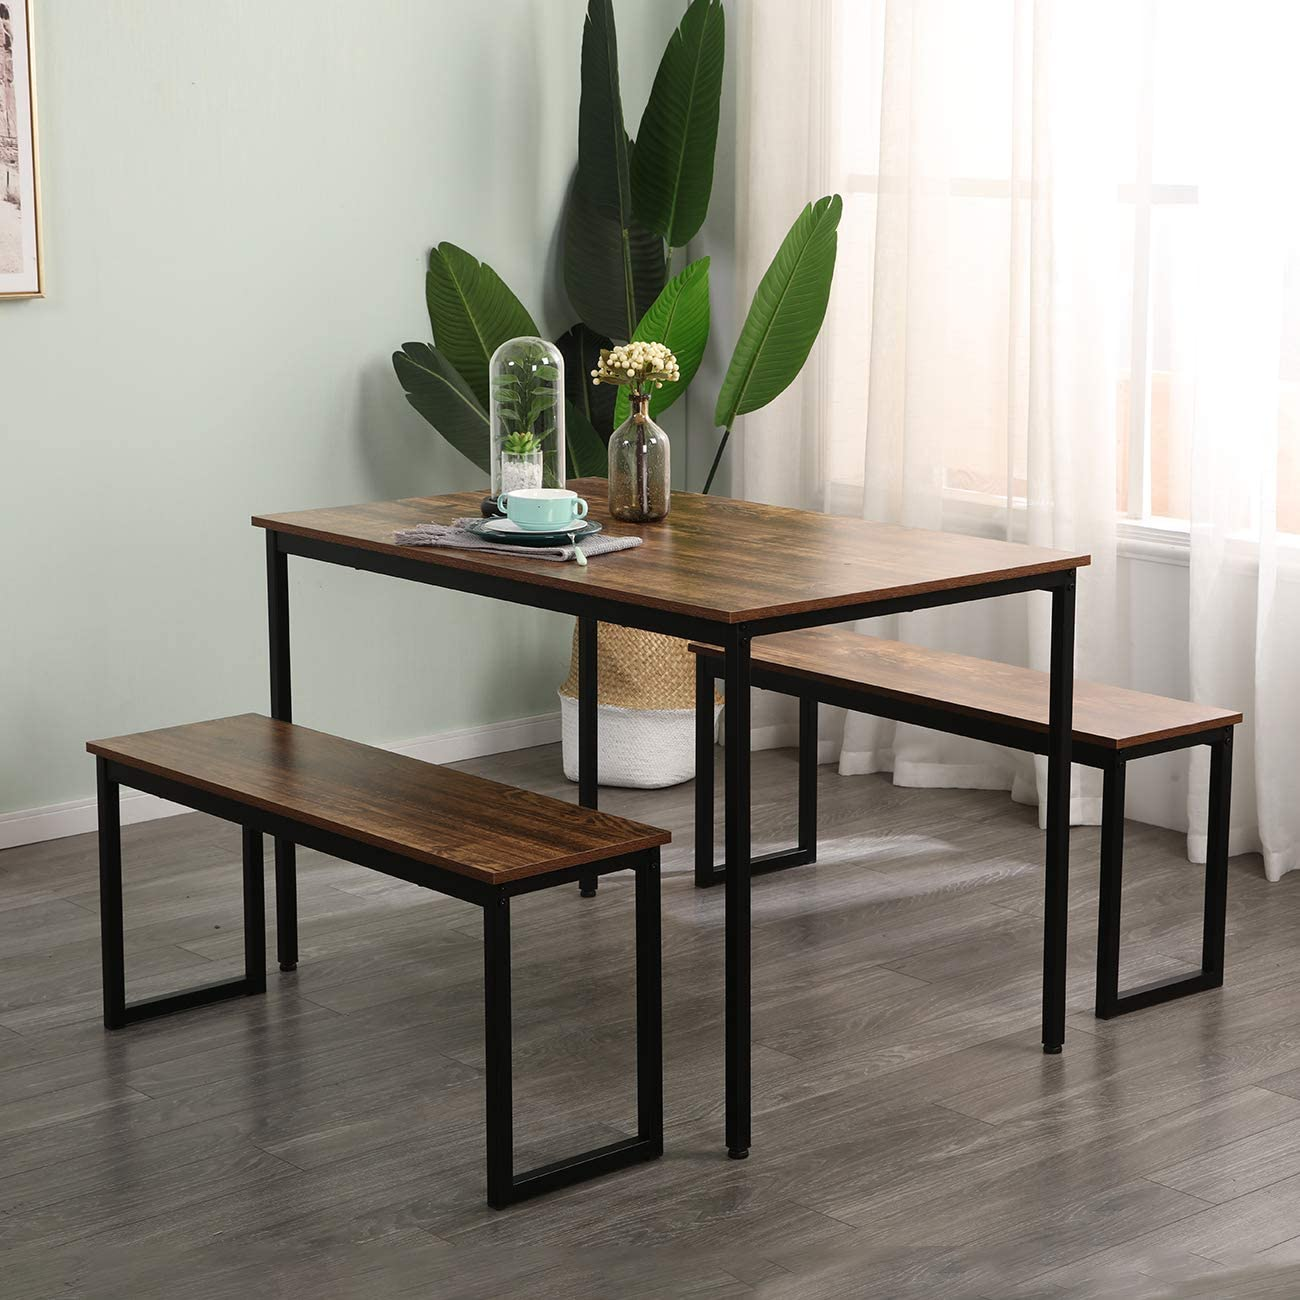 SogesPower 3 mart Piece Dining Table with Set 2 35% OFF Benches